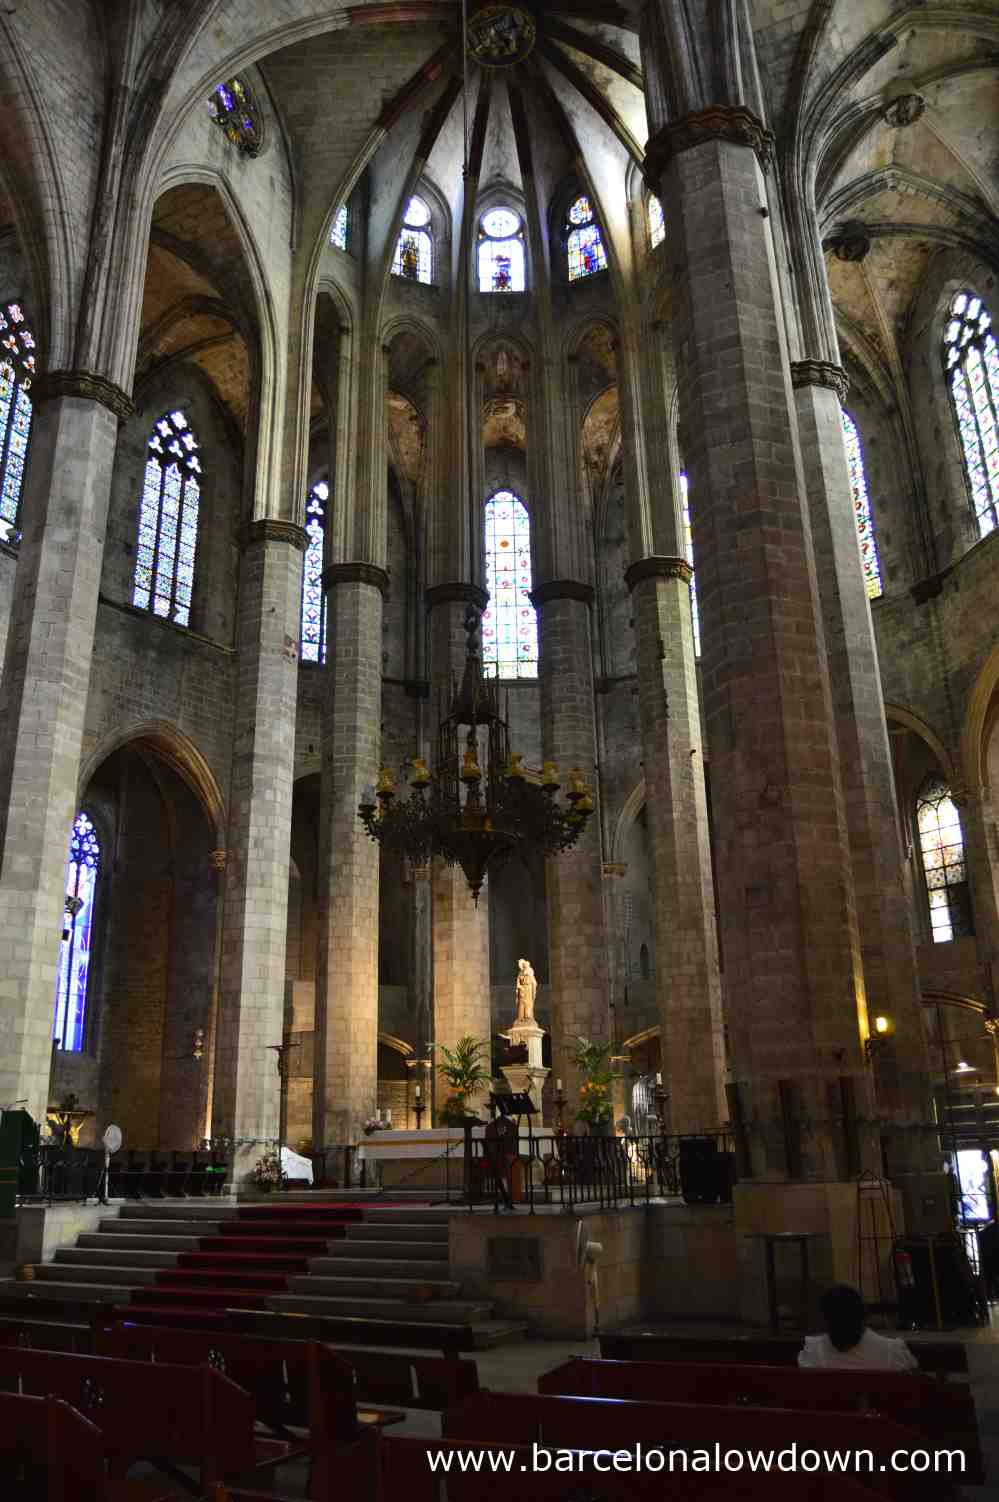 The altar and statue of the virgin Mary in Barcelona's Santa Maria del Mar basilica aka the Cathedral of the Sea